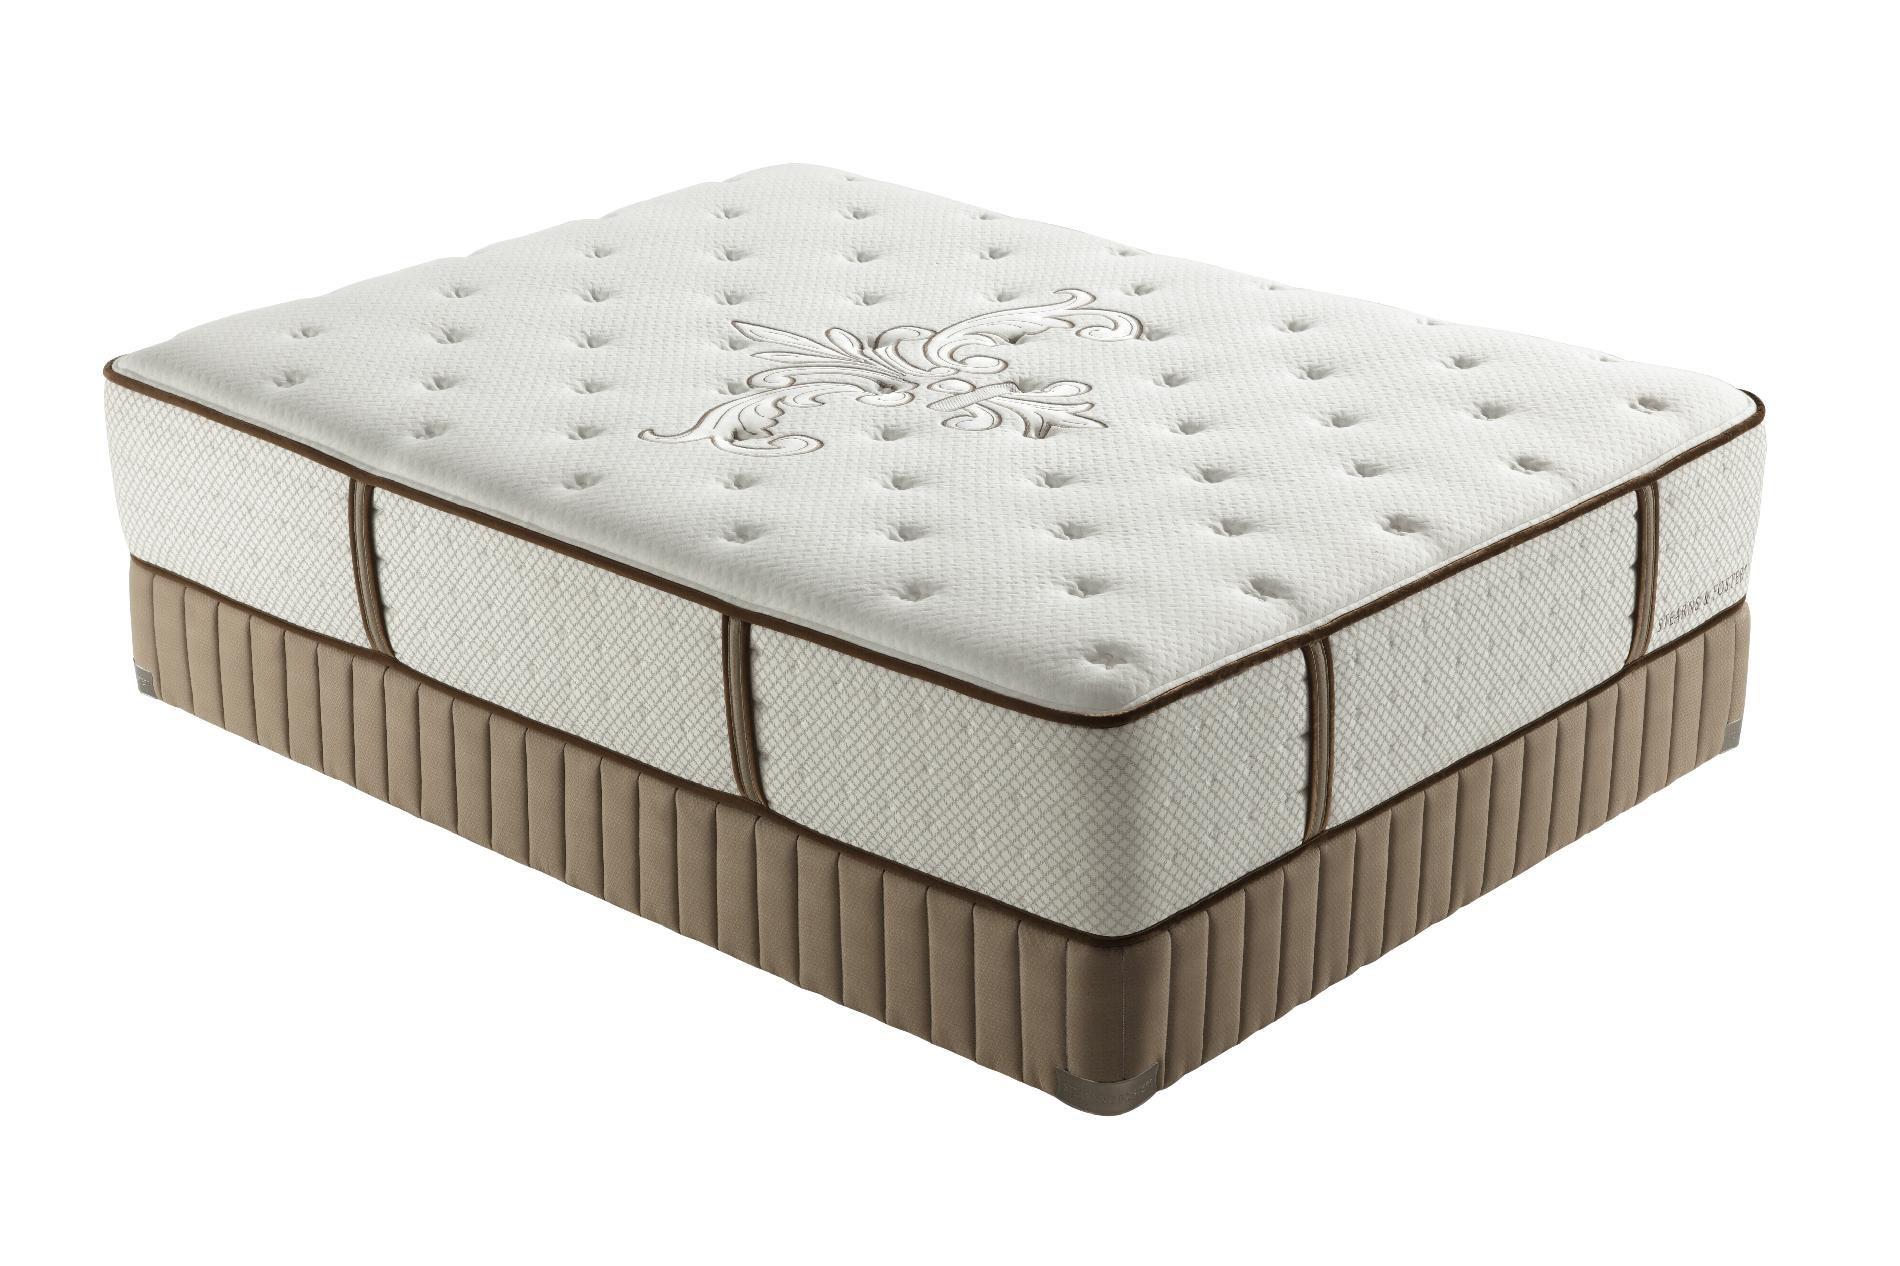 Stearns & Foster Lux Estate Alejandra II Ultra Firm Queen Mattress Only